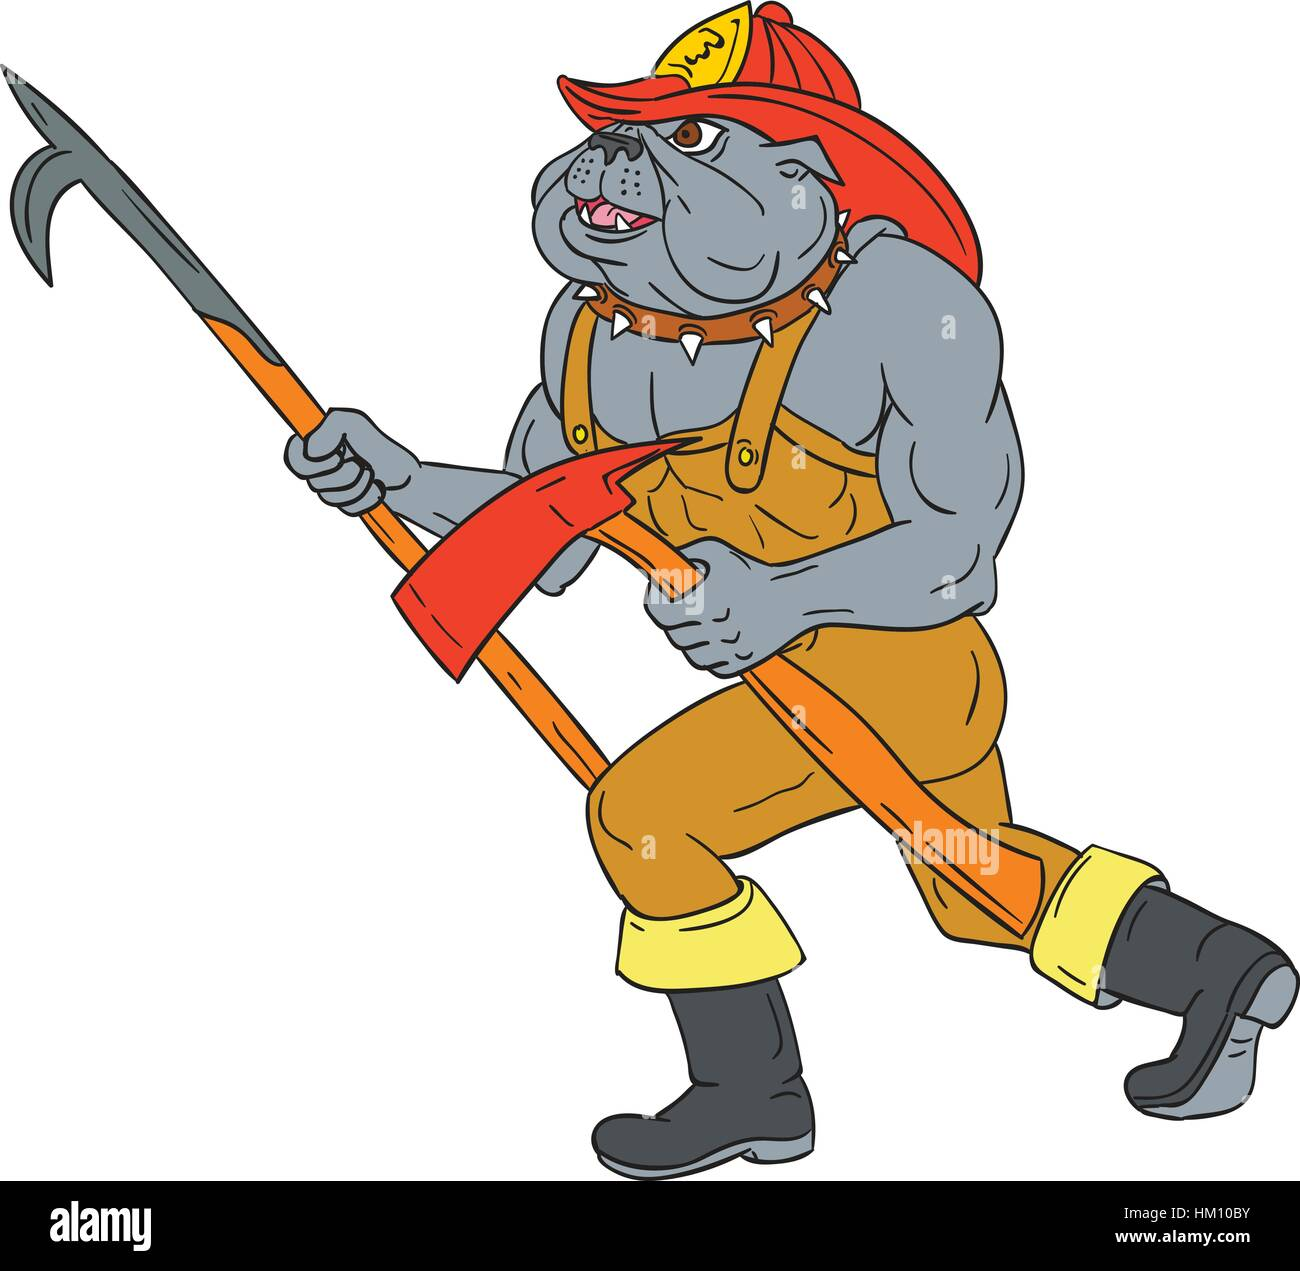 drawing sketch style illustration of a bulldog firefighter fireman